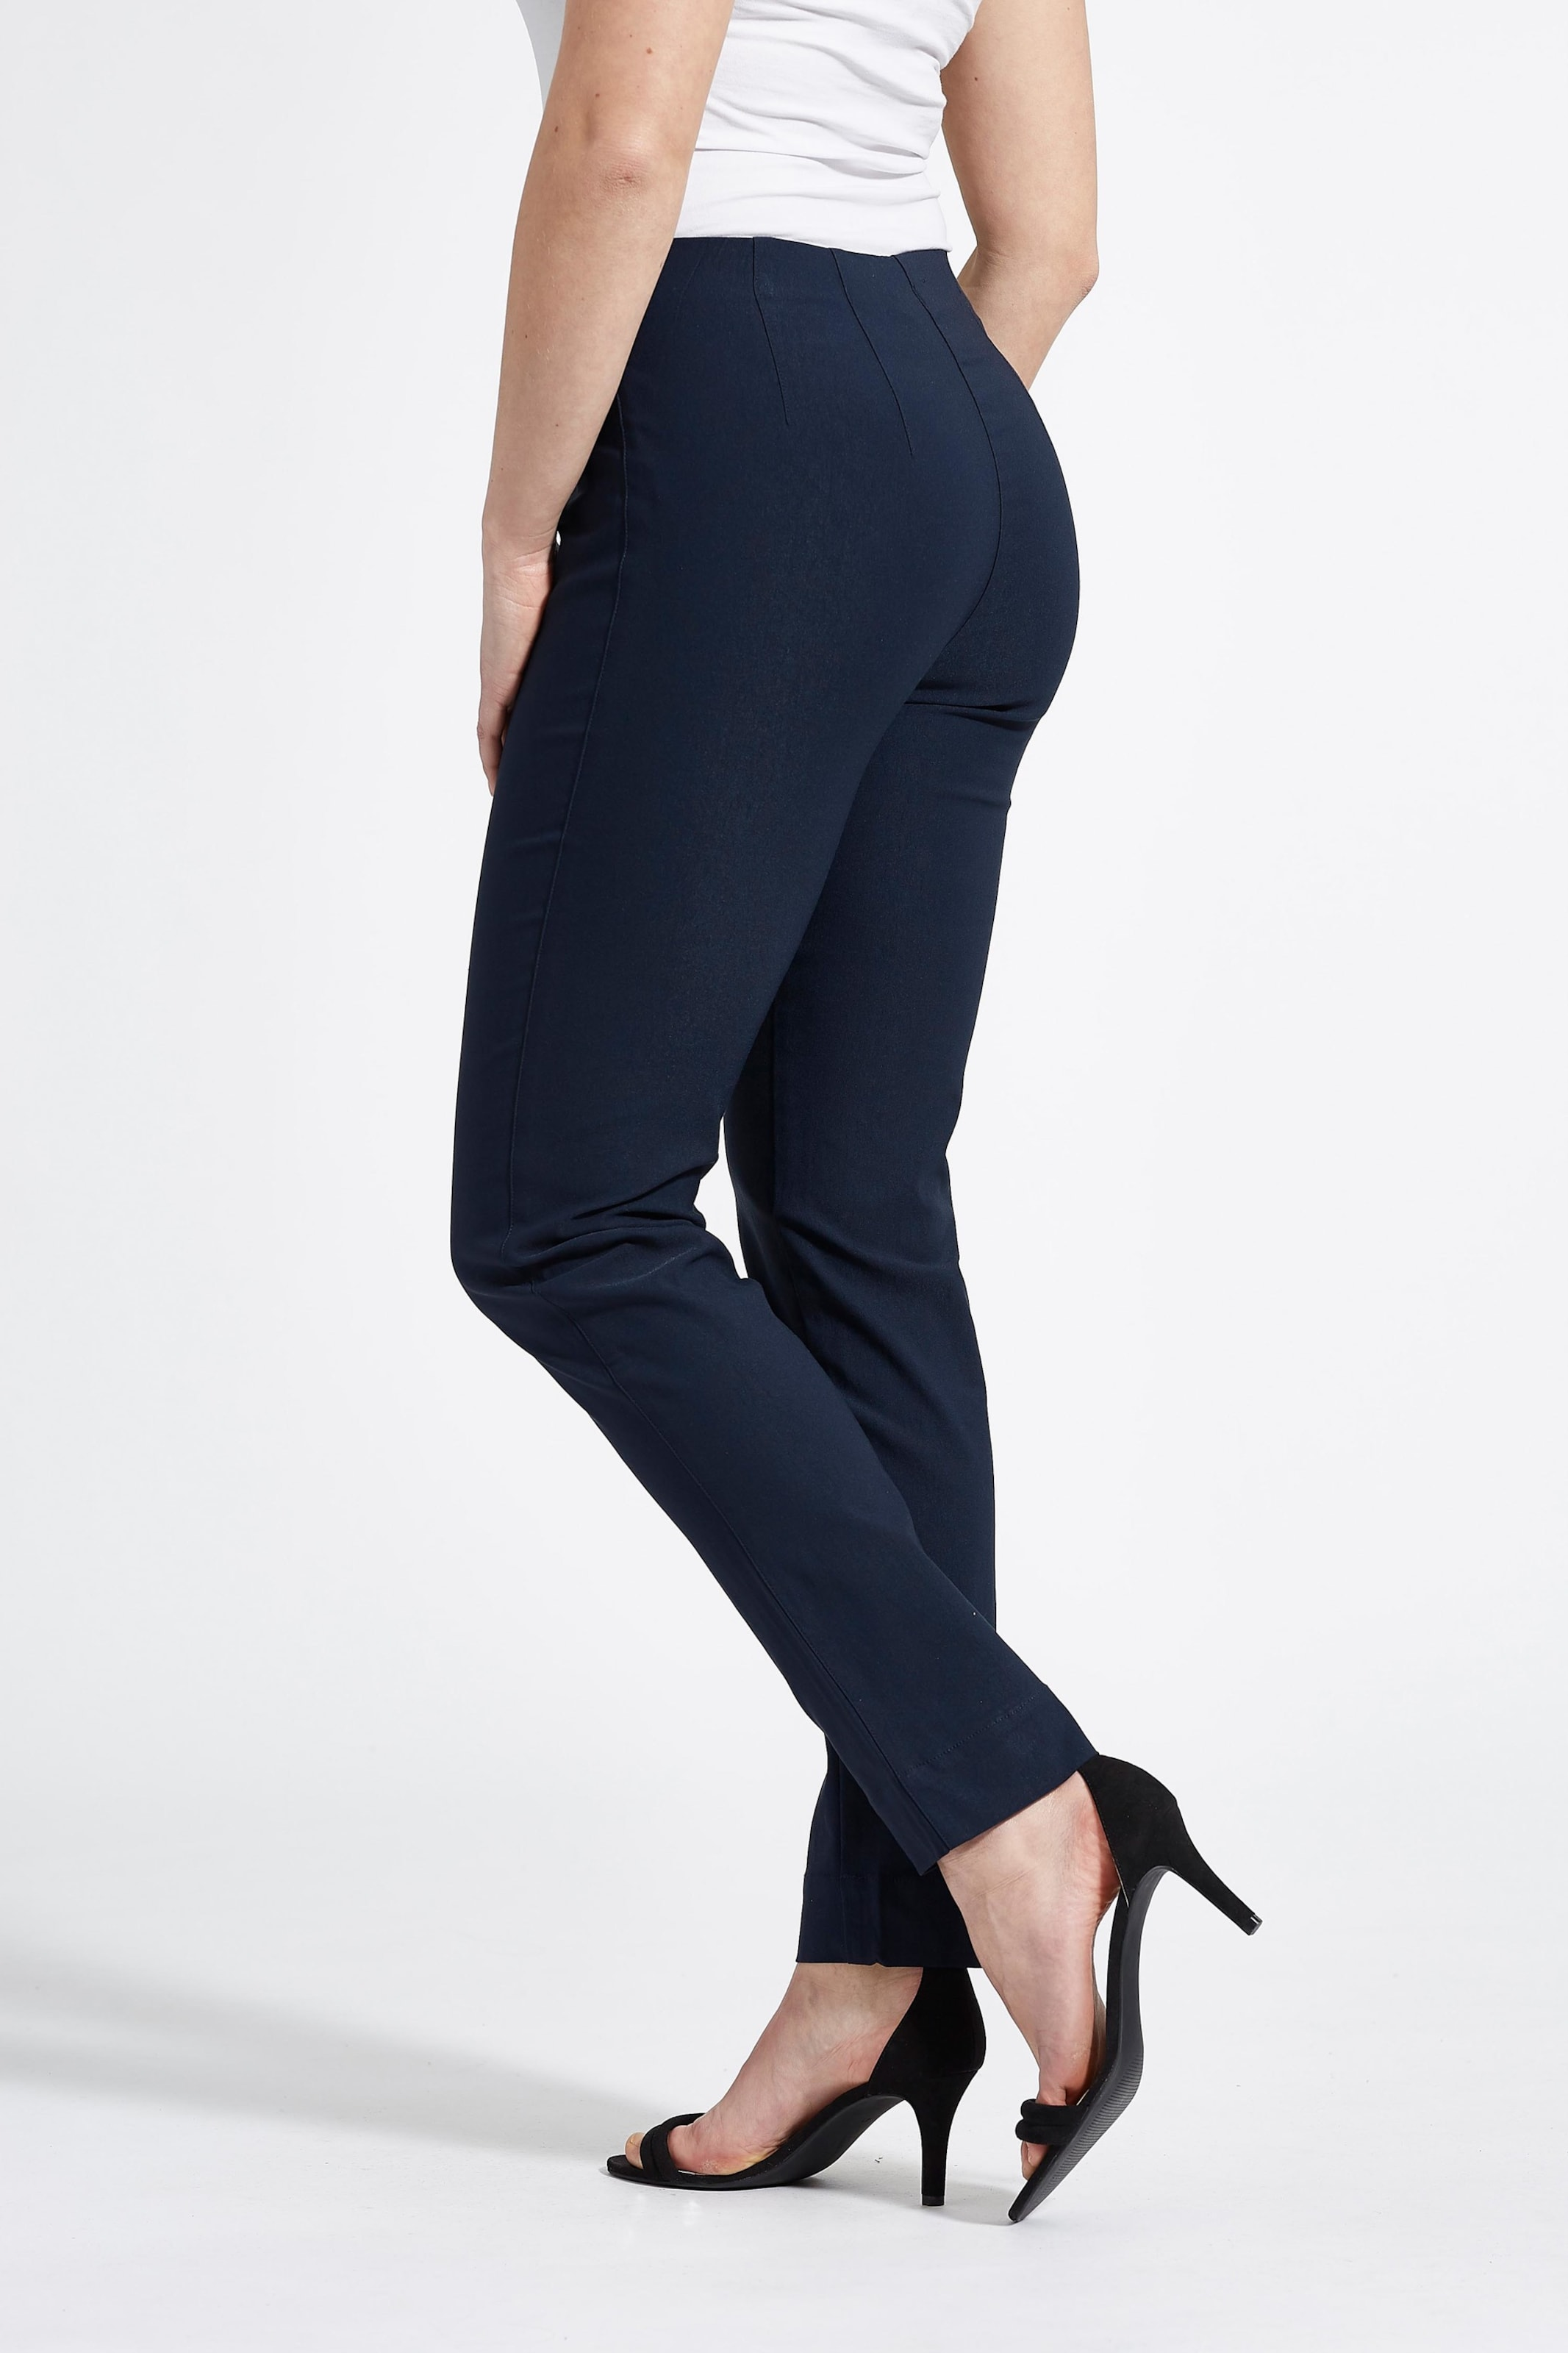 'betty' Stoffhose In Laurie Laurie Navy mnwN80